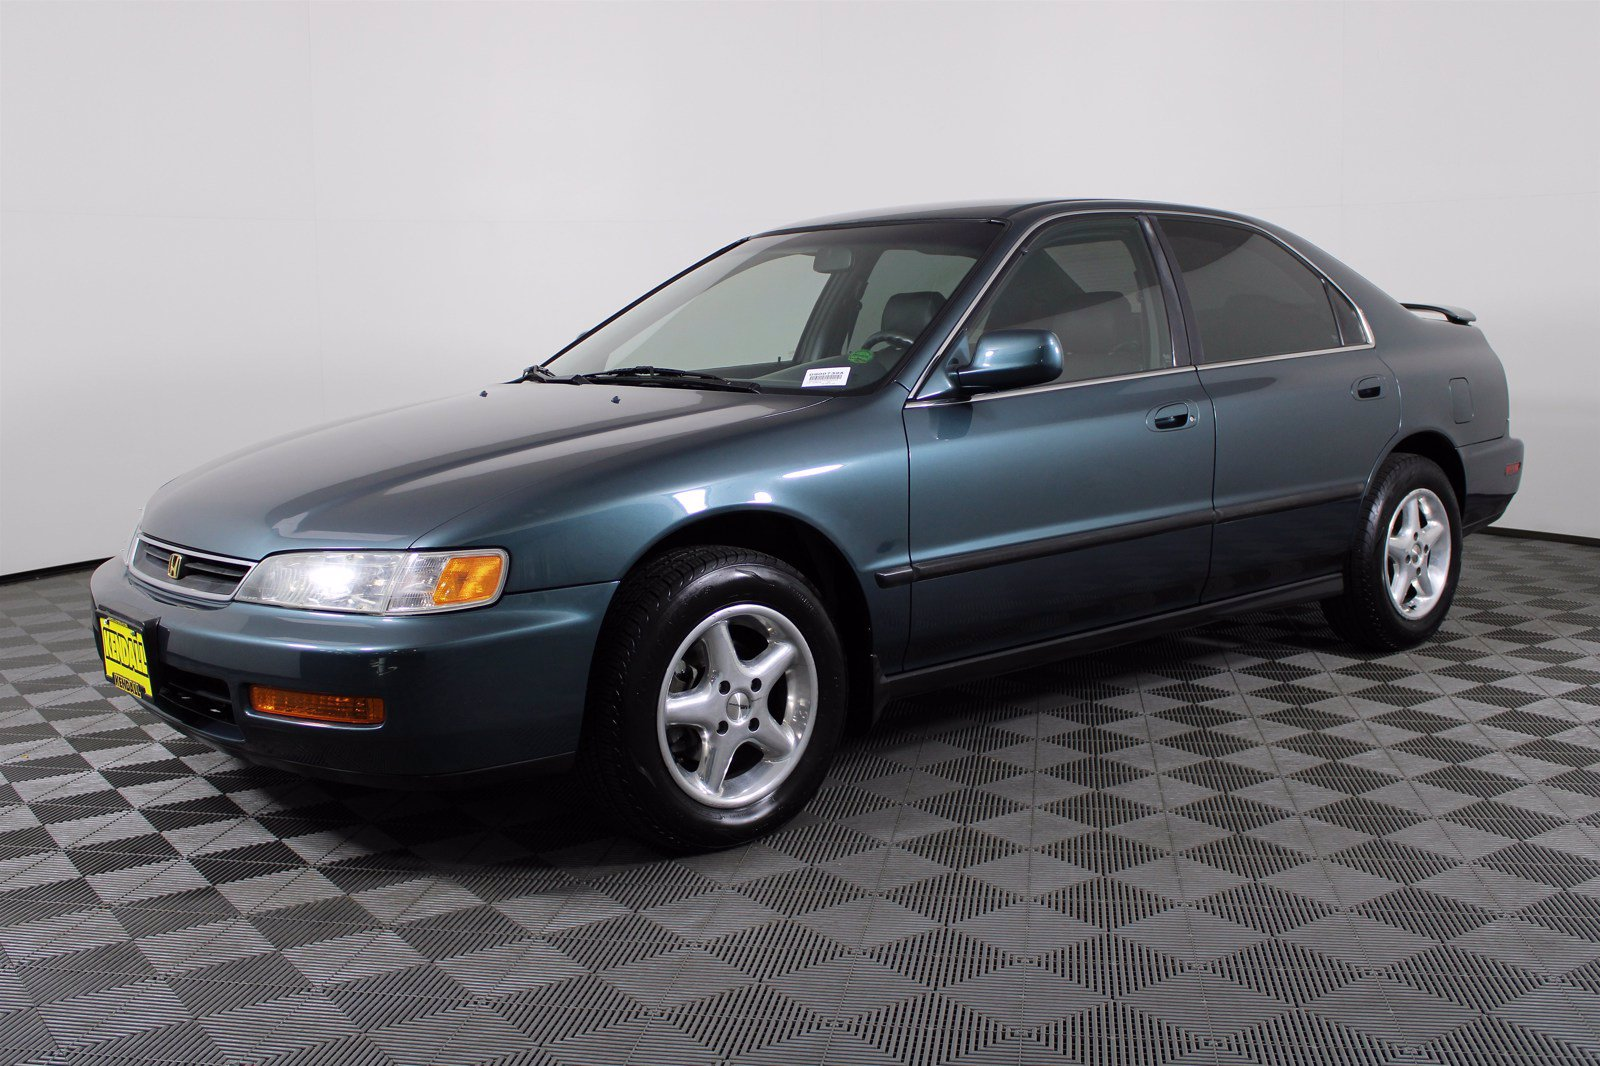 Pre-Owned 1997 Honda Accord Sdn LX